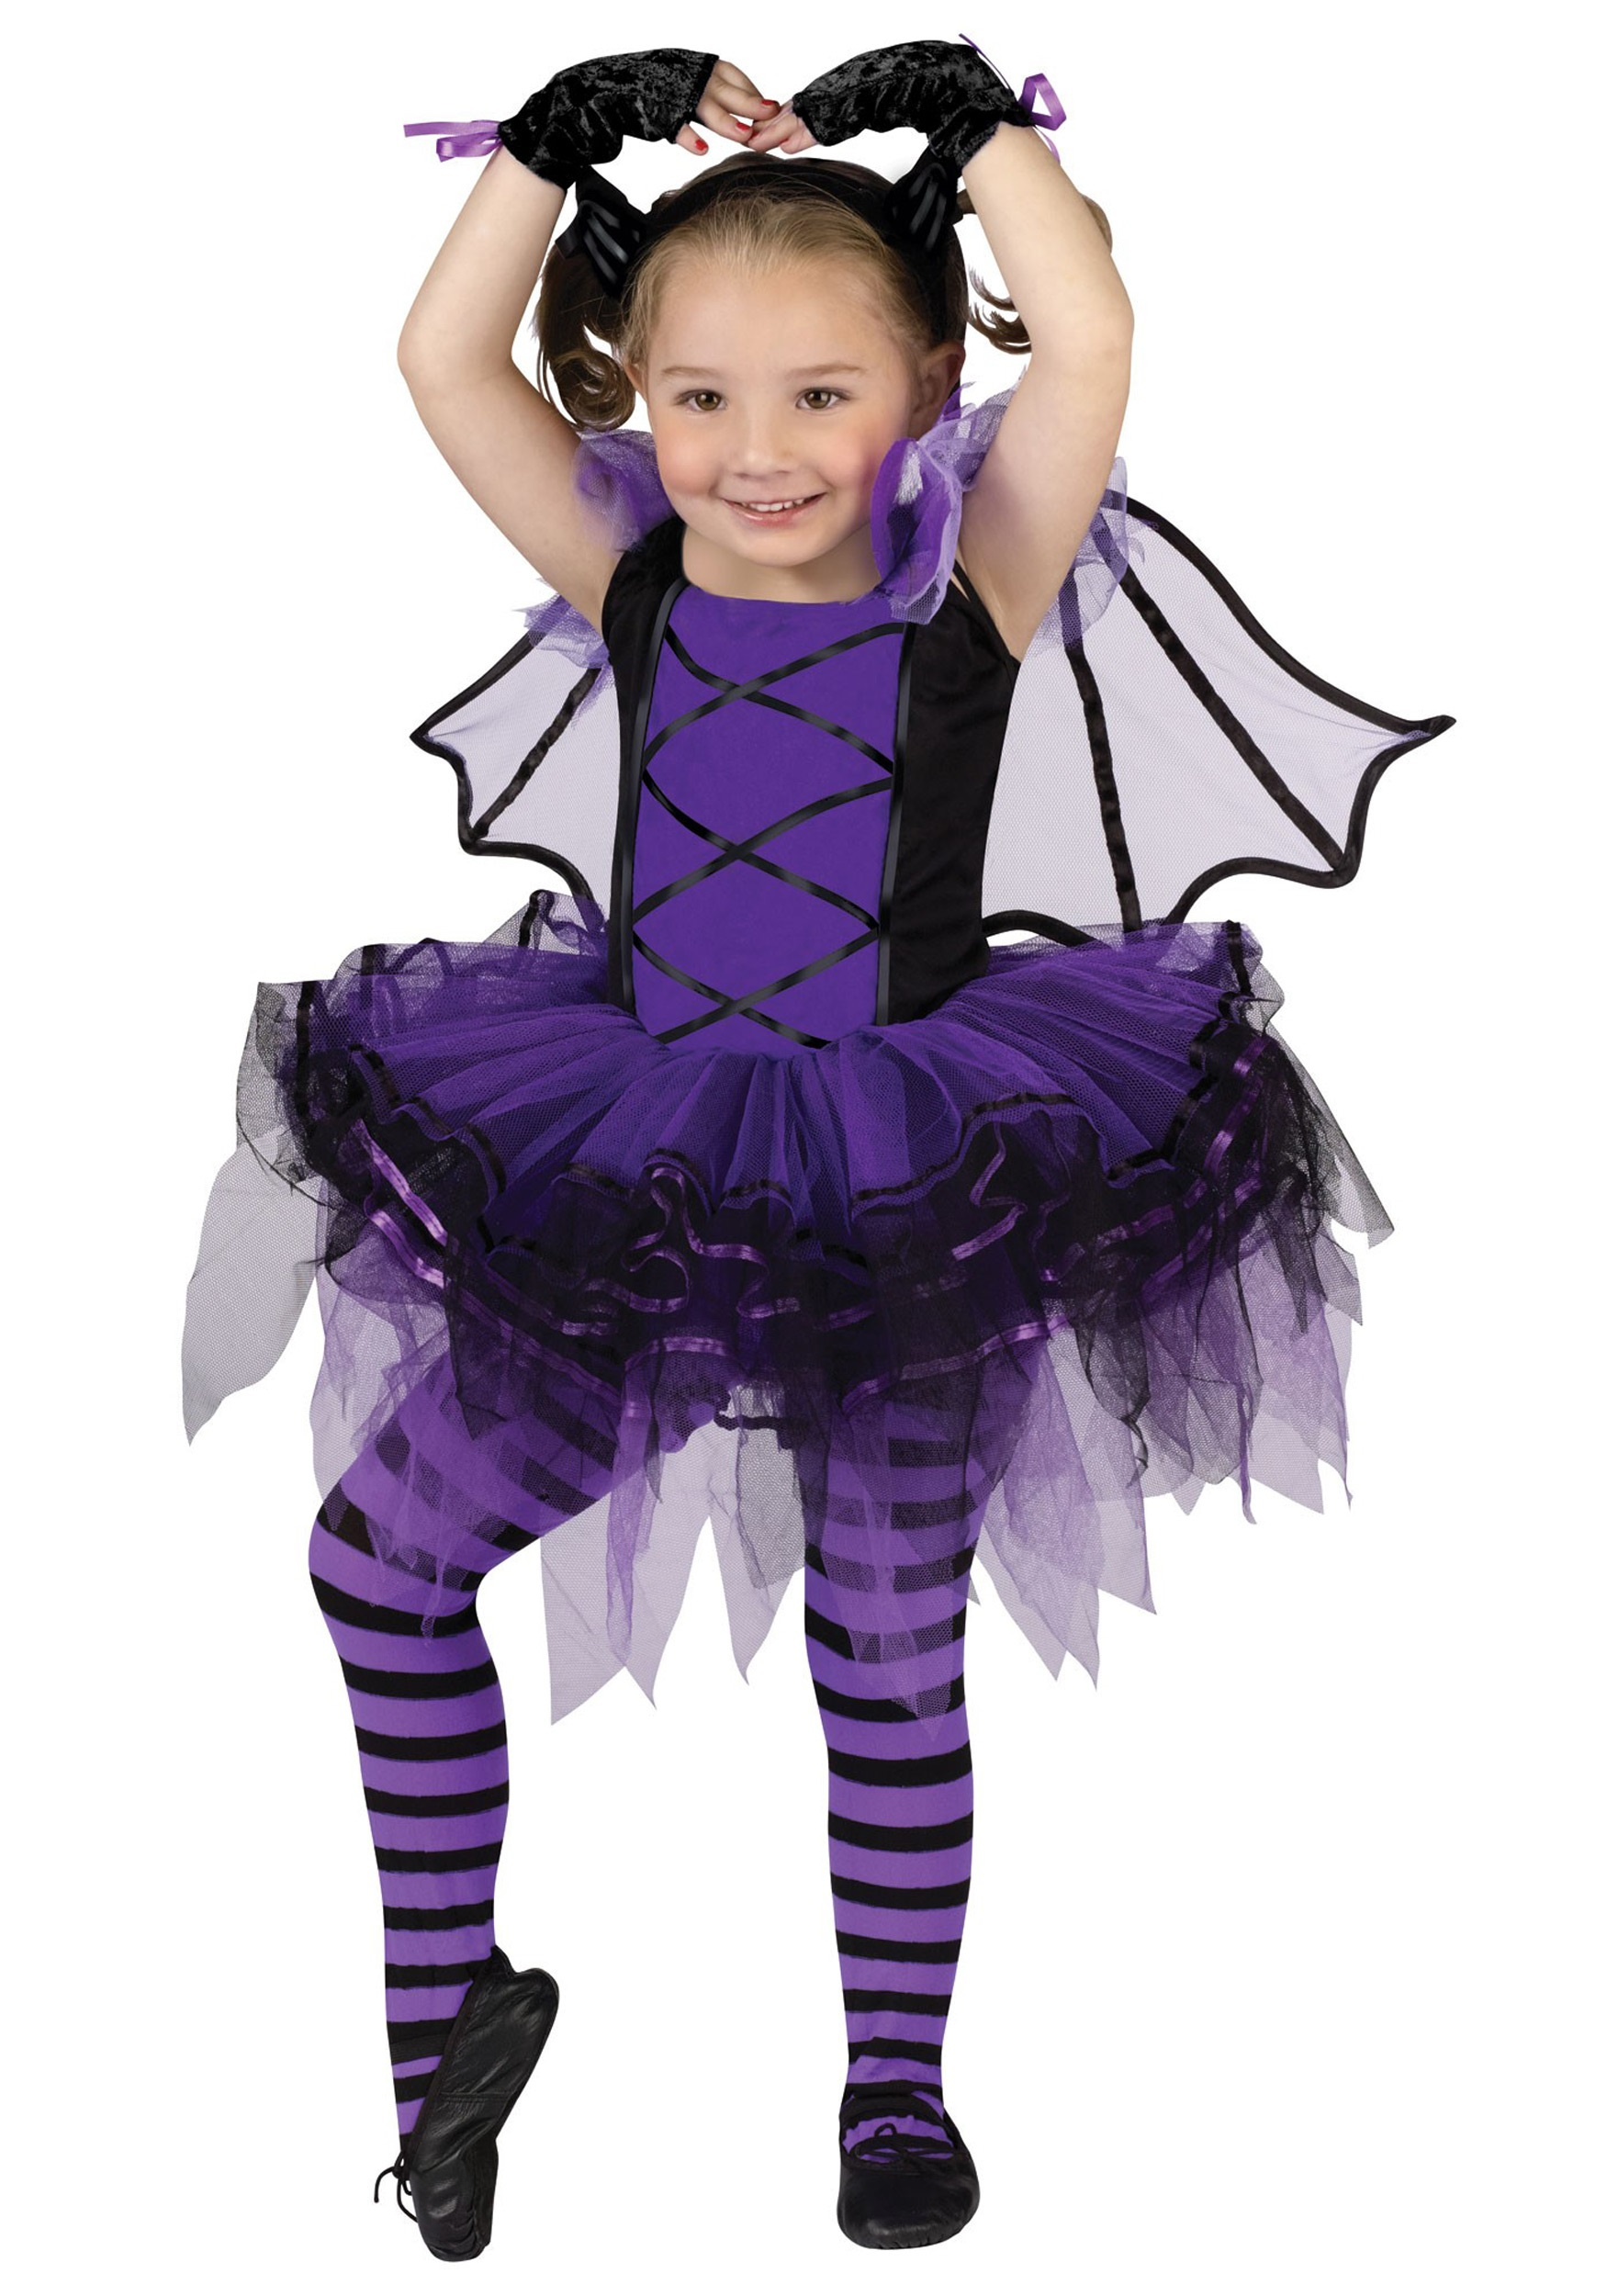 Toddler Batarina Costume  sc 1 st  Halloween Costumes & Toddler Batarina Costume - Halloween Costumes